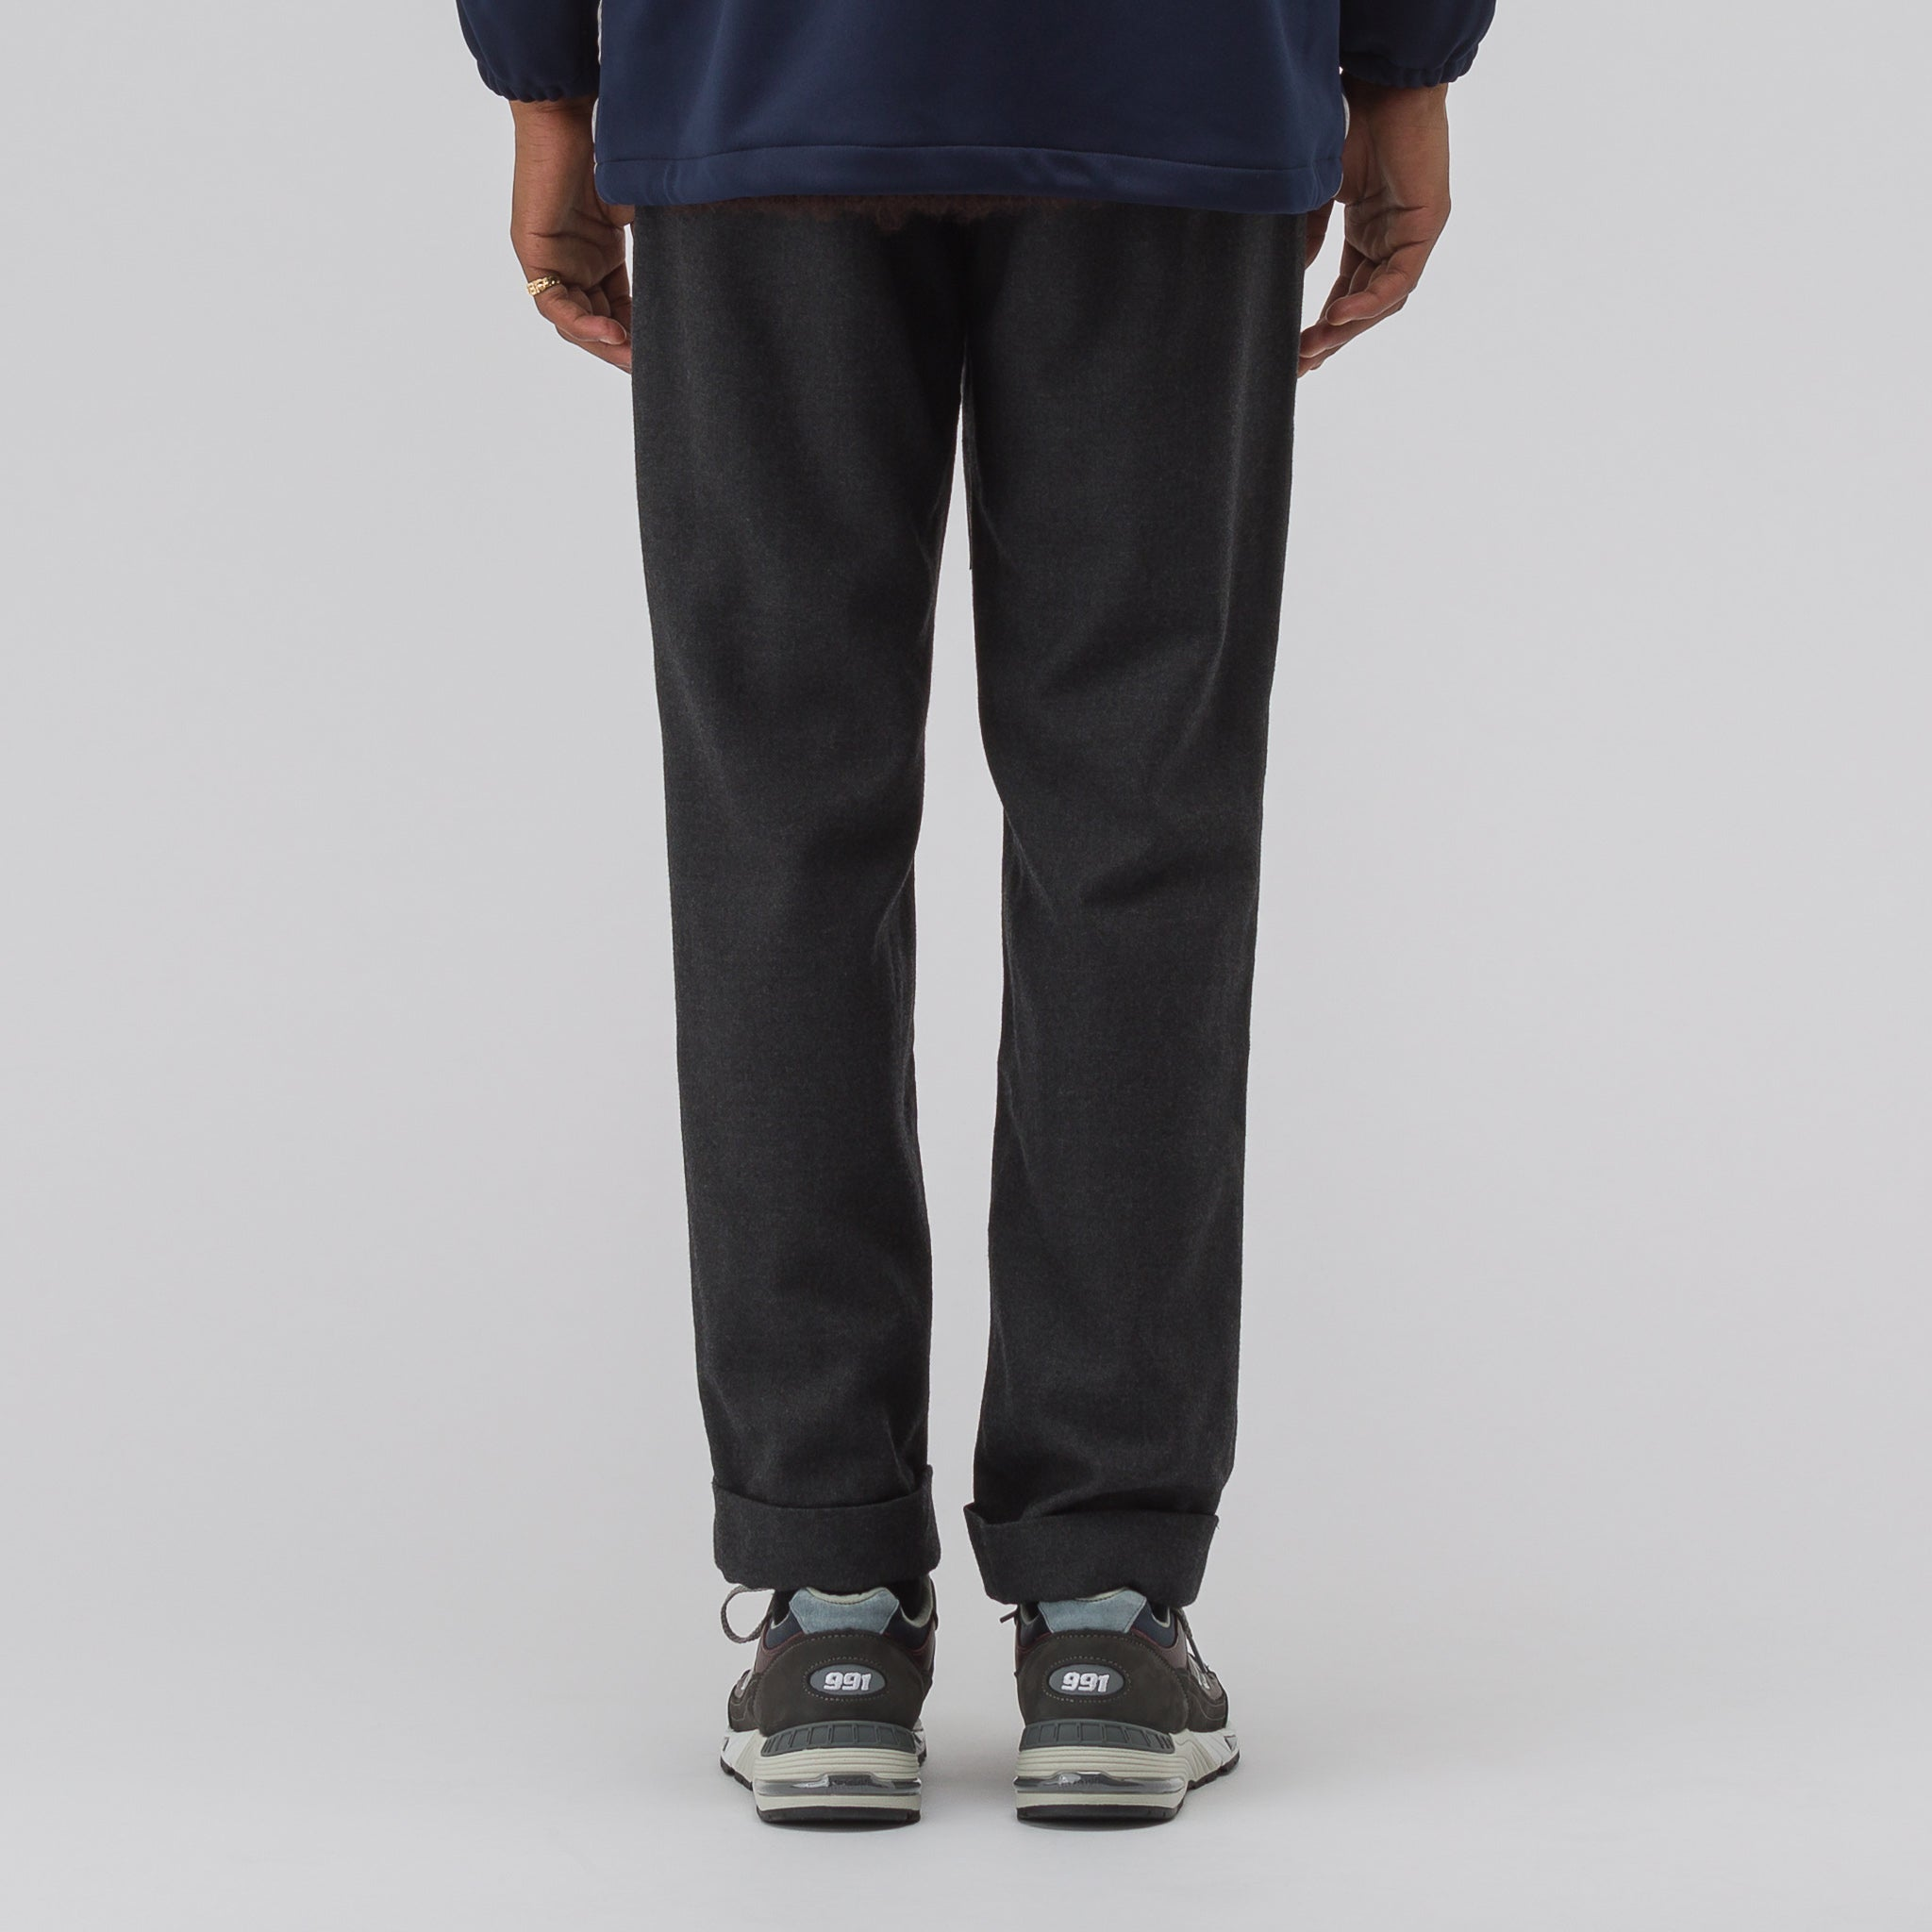 Andover Pant in Charcoal Heather